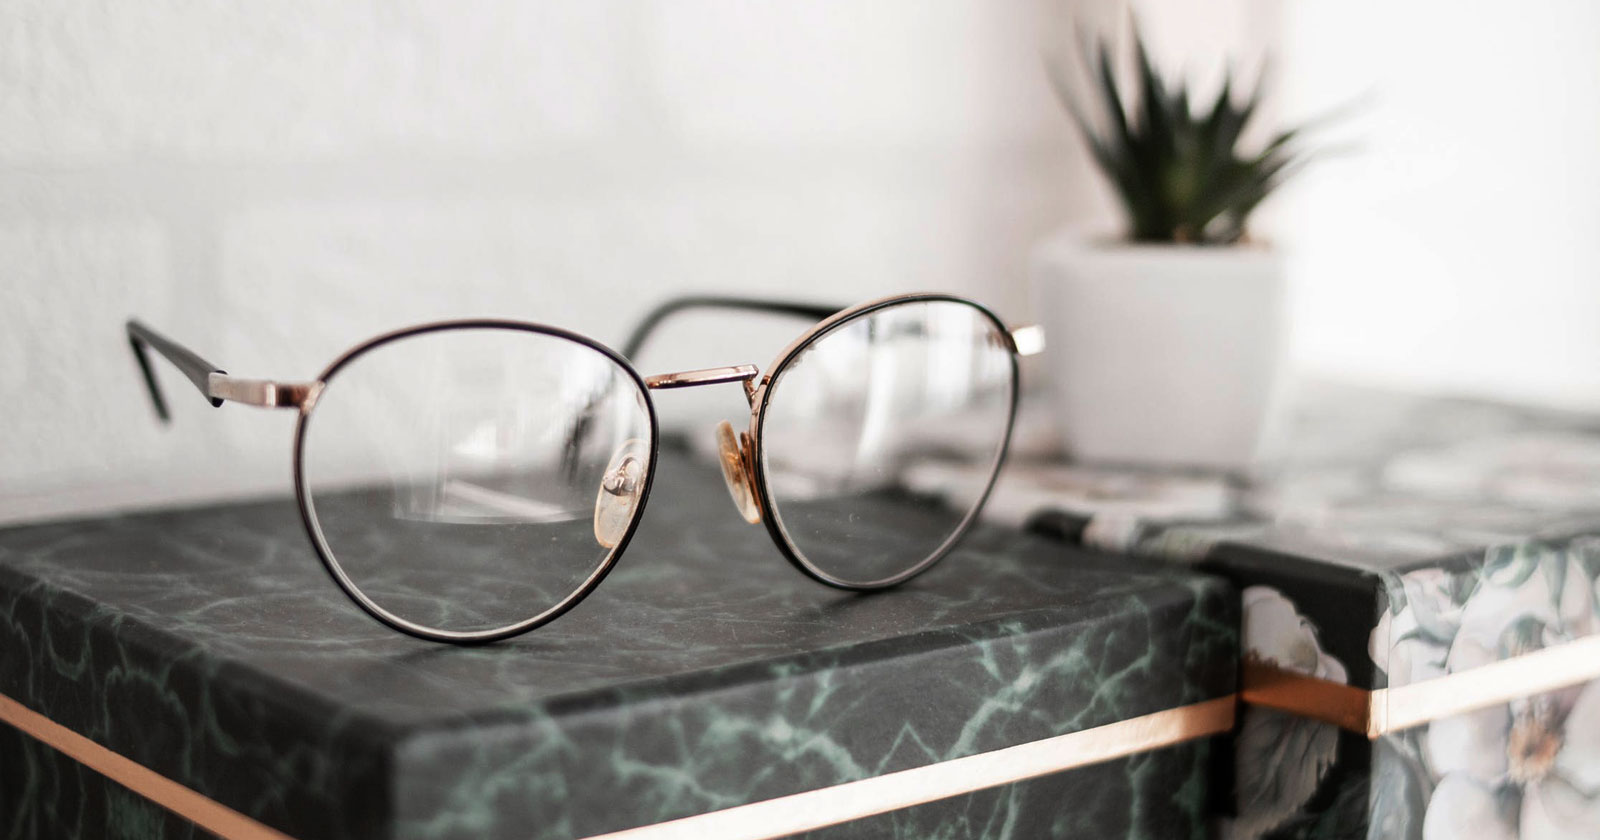 How to Clean Your Glasses Rightly?